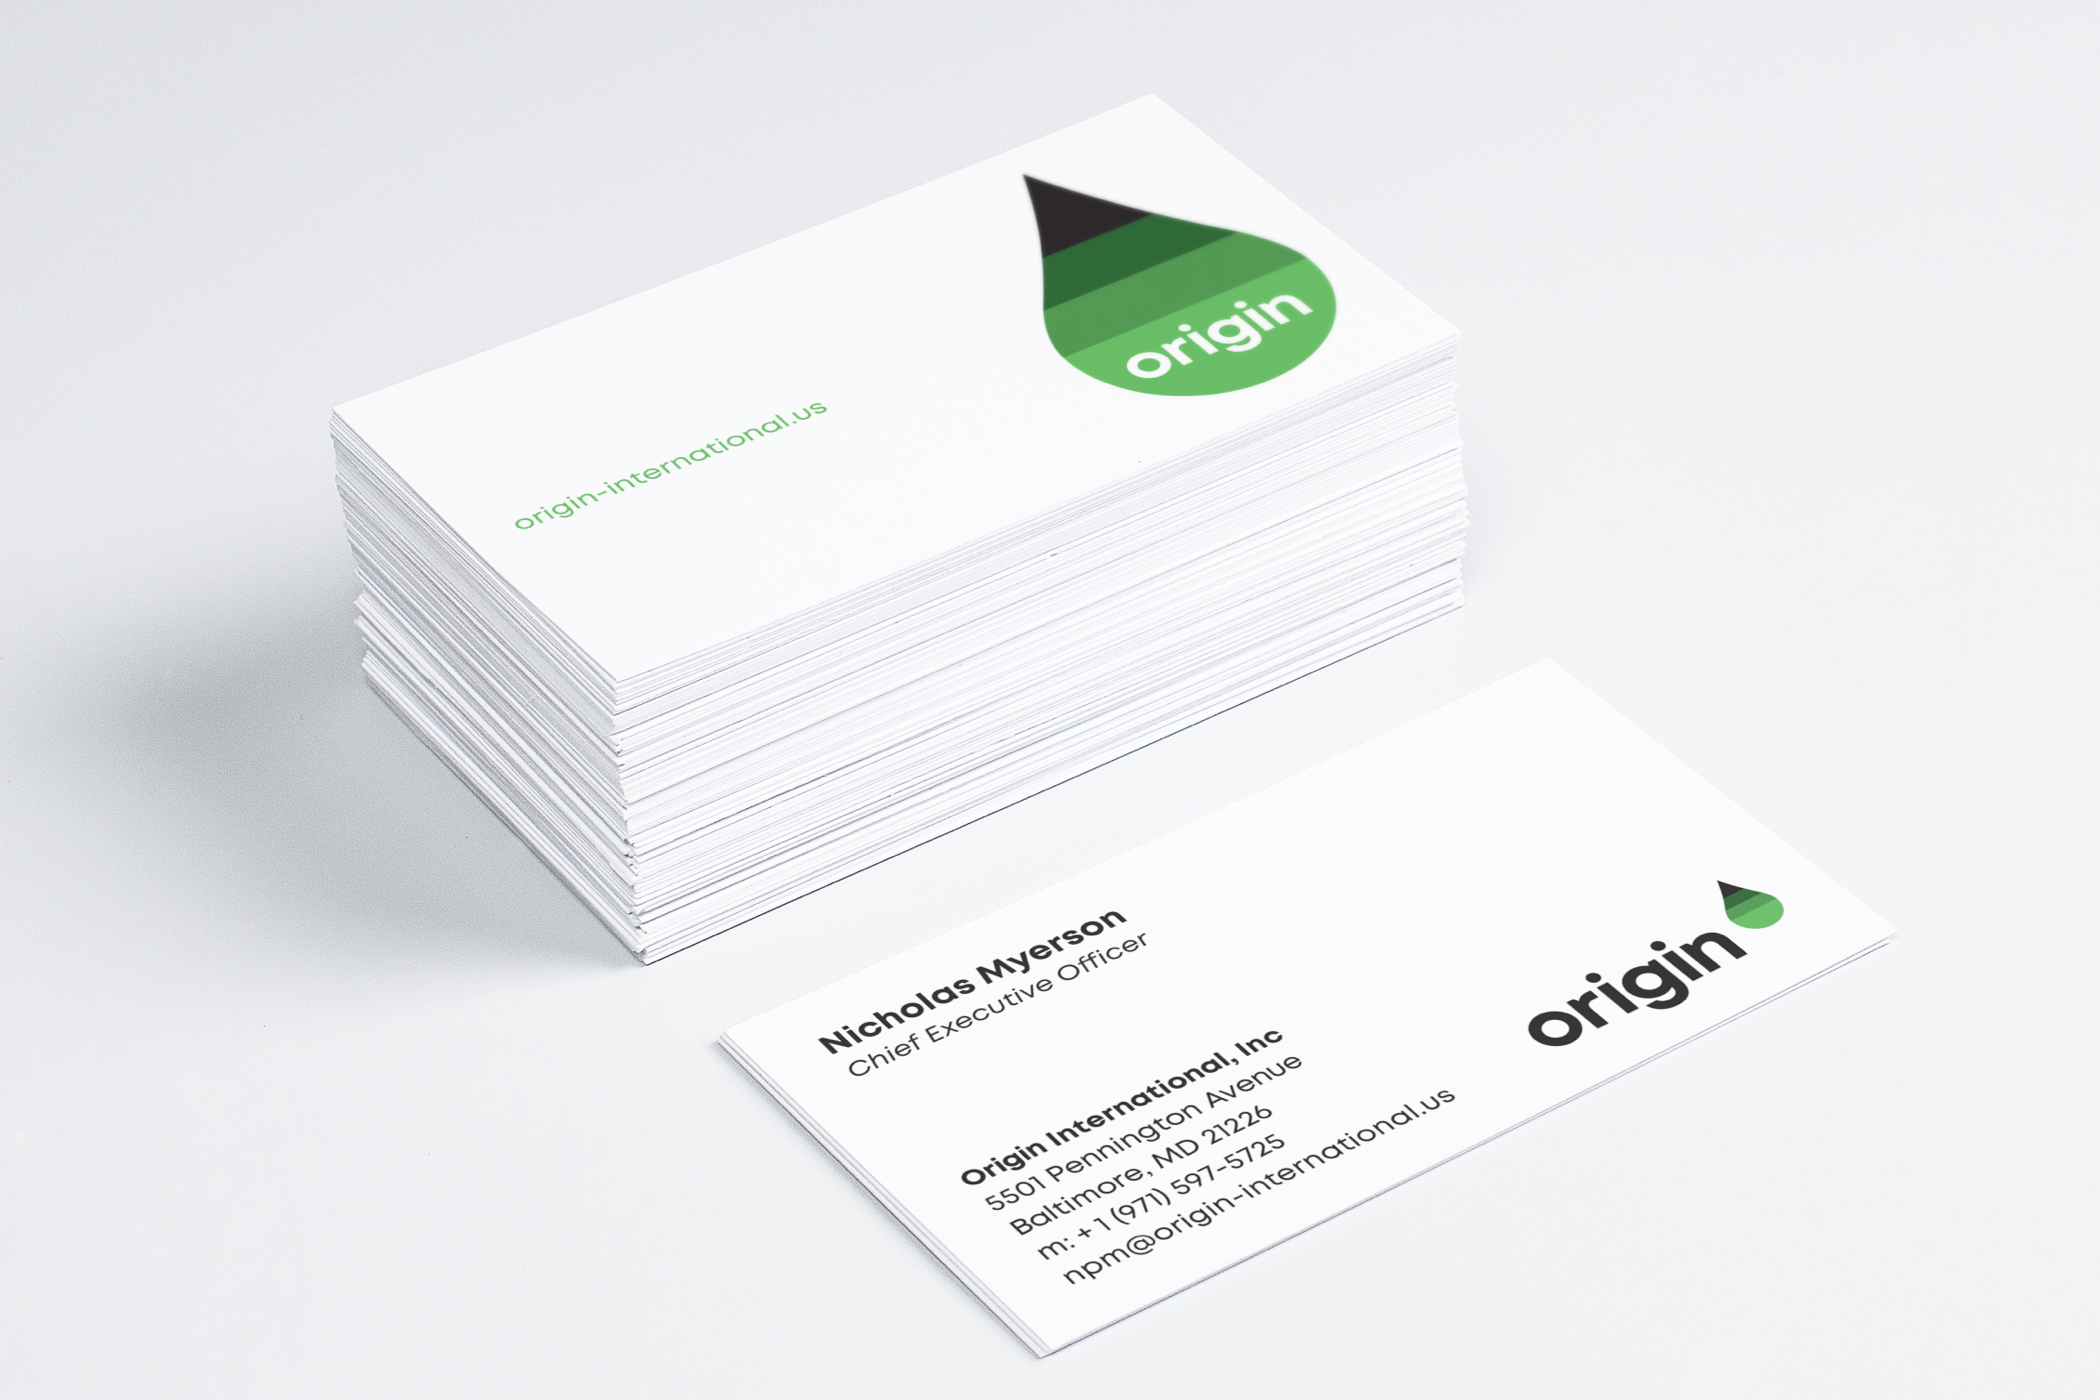 The Origin International logotype and green-gradient droplet symbol painted on white business cards.